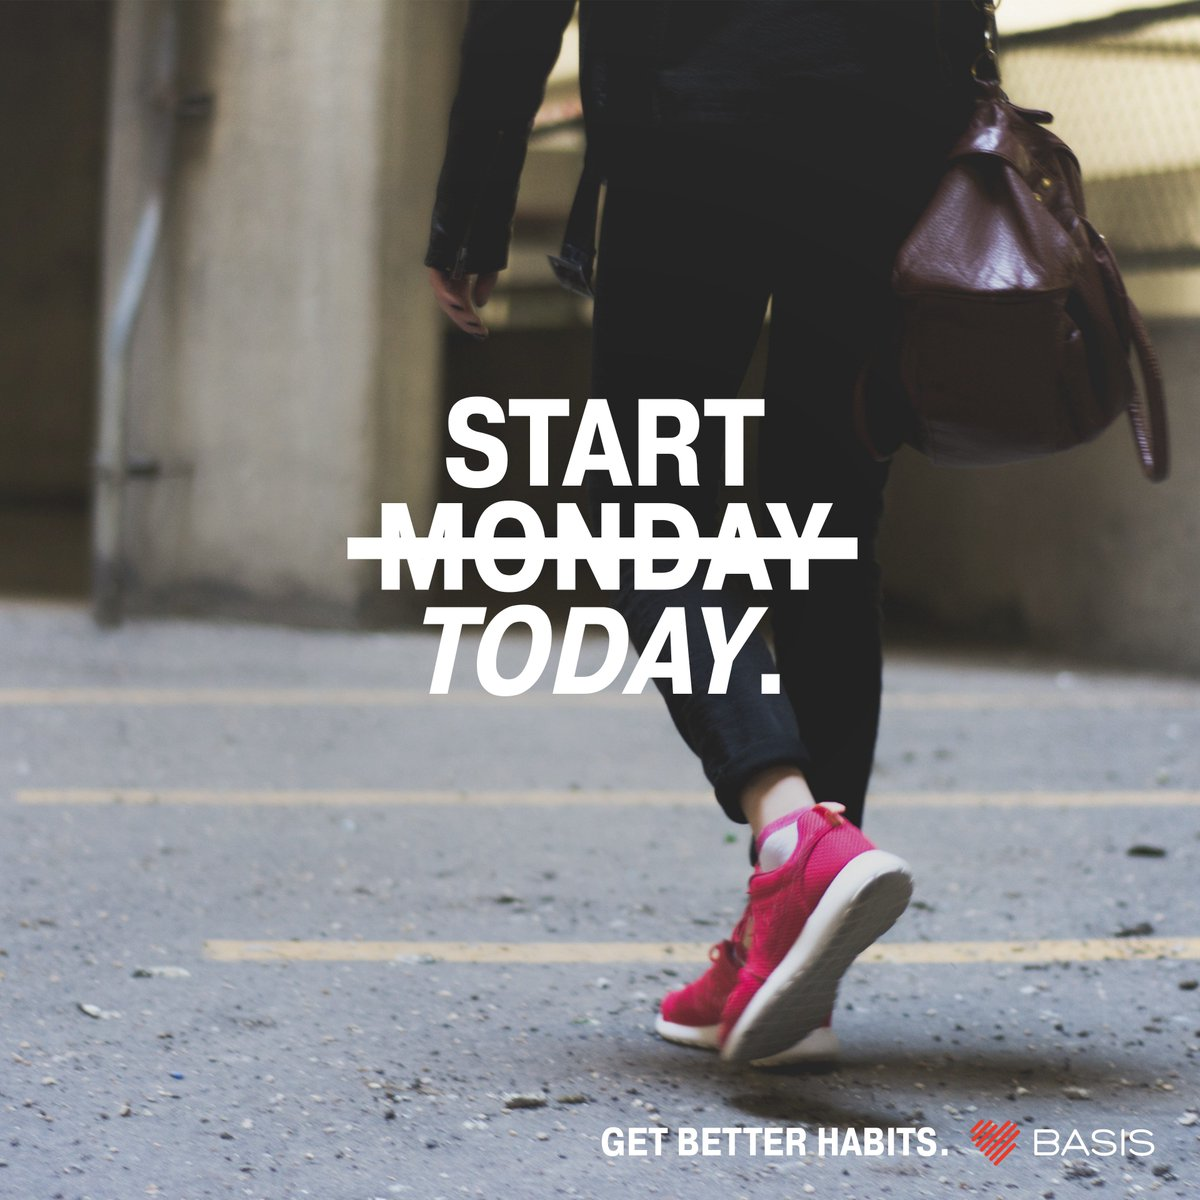 A.5 Start getting better habits today! #KeepFitHaveFun See photo motivation: https://t.co/bdcwyFk2Ve https://t.co/lqBSZKbuZk